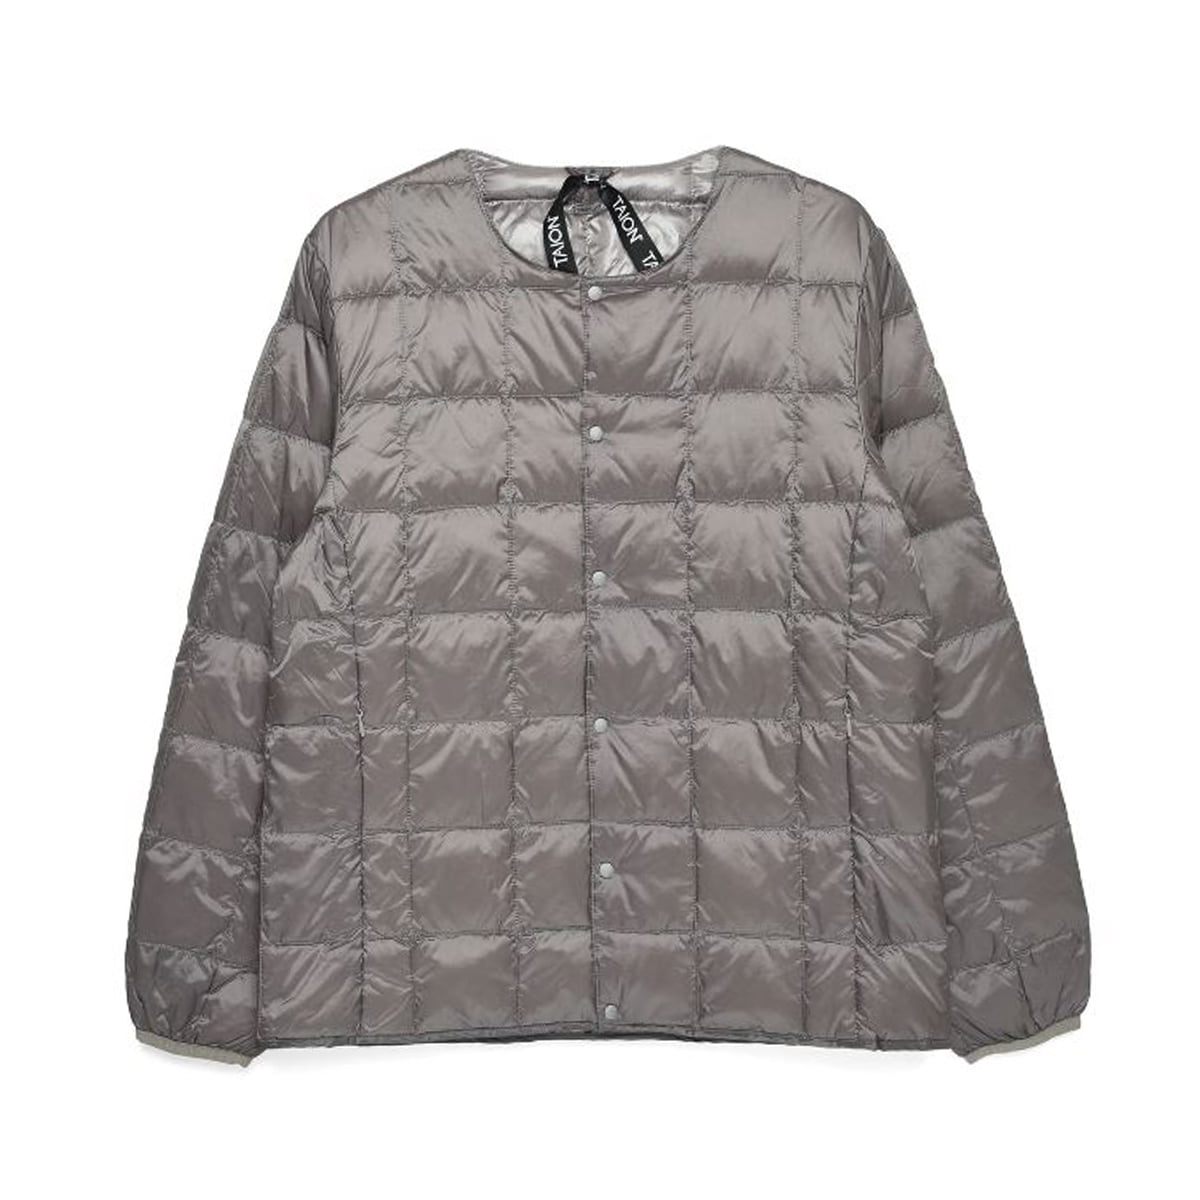 [TAION] CREW NECK BUTTON DOWN JACKET (TAION-104) 'GRAY'